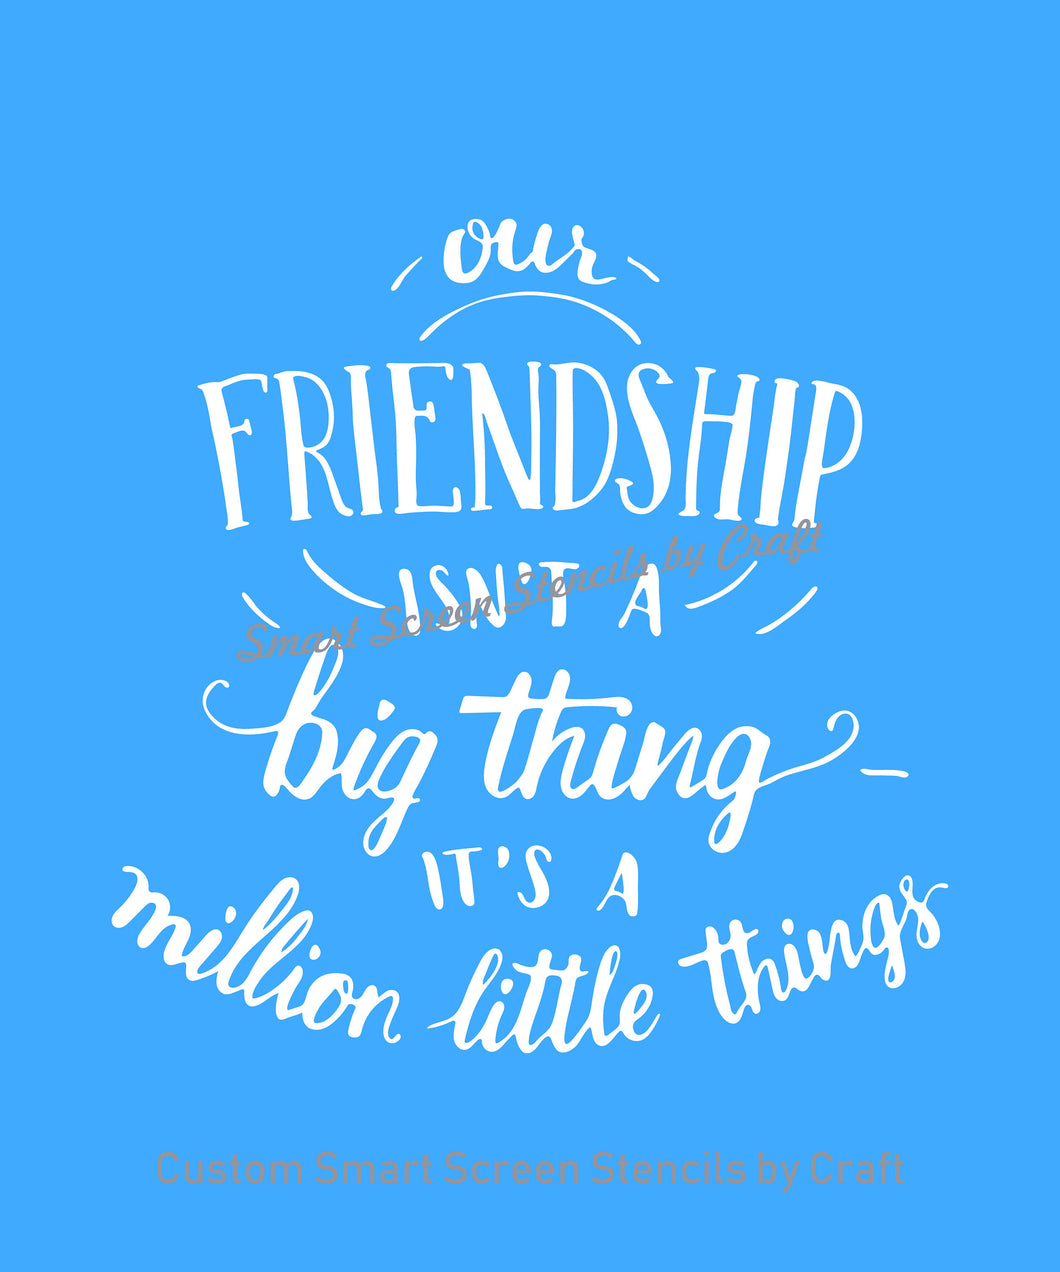 Our Friendship Quote SmartScreen Stencil - Reusable, Self adhesive - Canvas, Cards, Glass, Ceramic, Walls, Fabric, Wood, Plastic, Metal